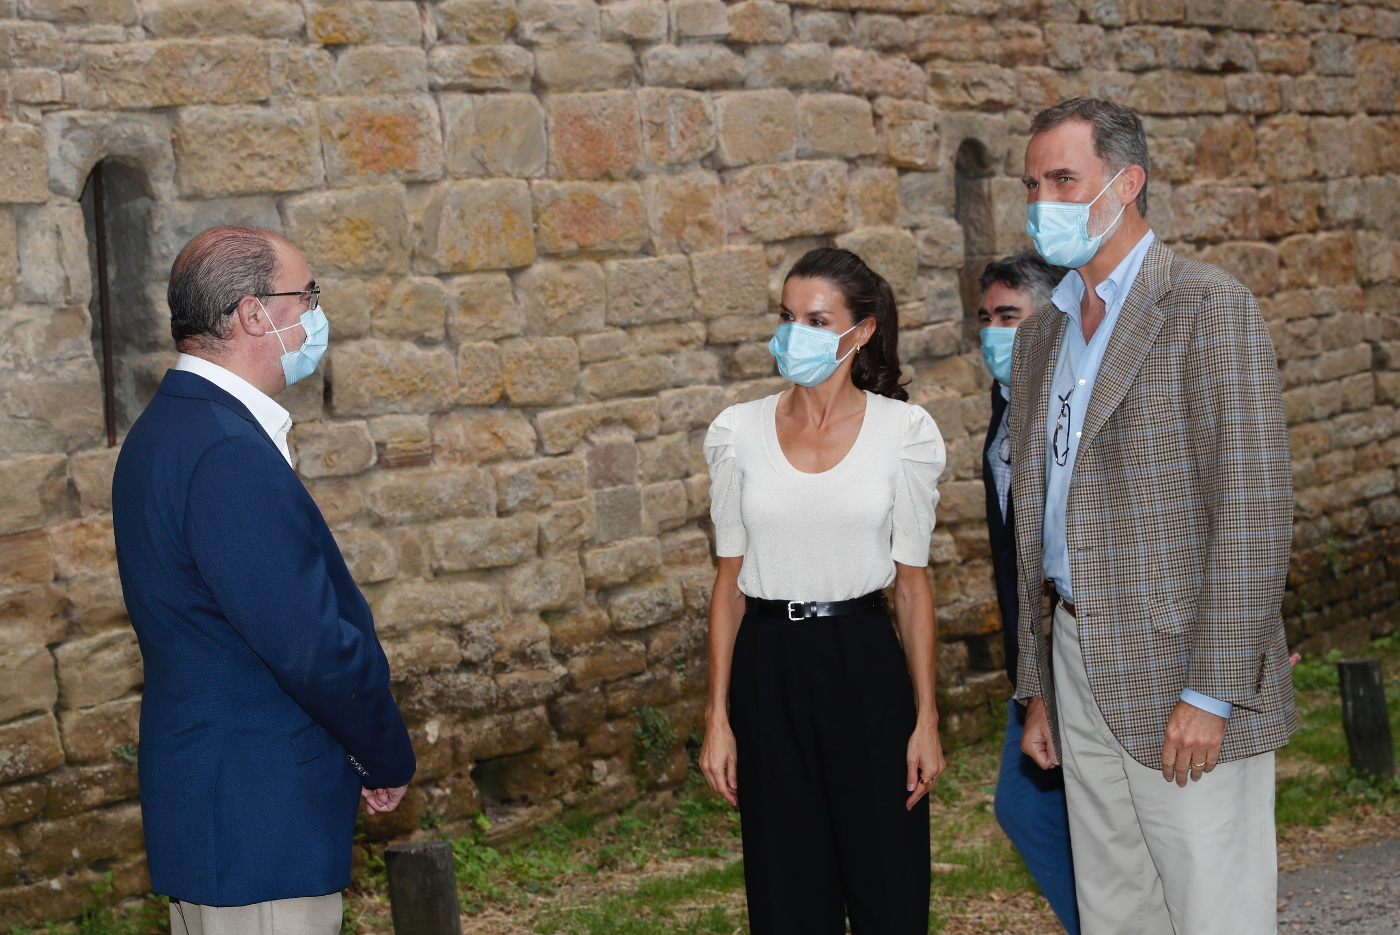 King Felipe and Queen Letizia of Spain visited Huesca